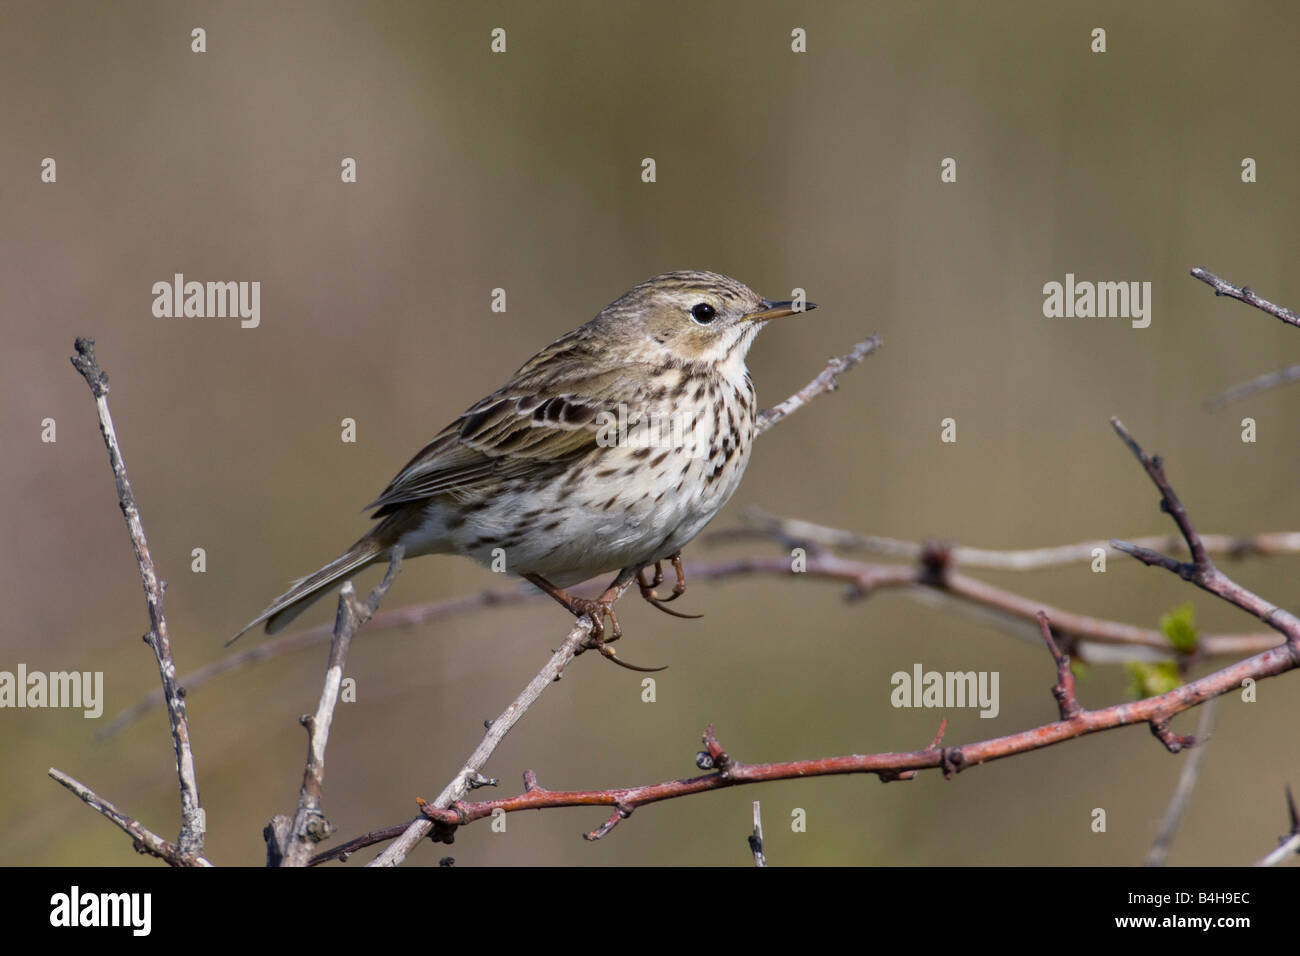 Close-up of Meadow Pipit (Anthus pratensis) perching on branch Stock Photo